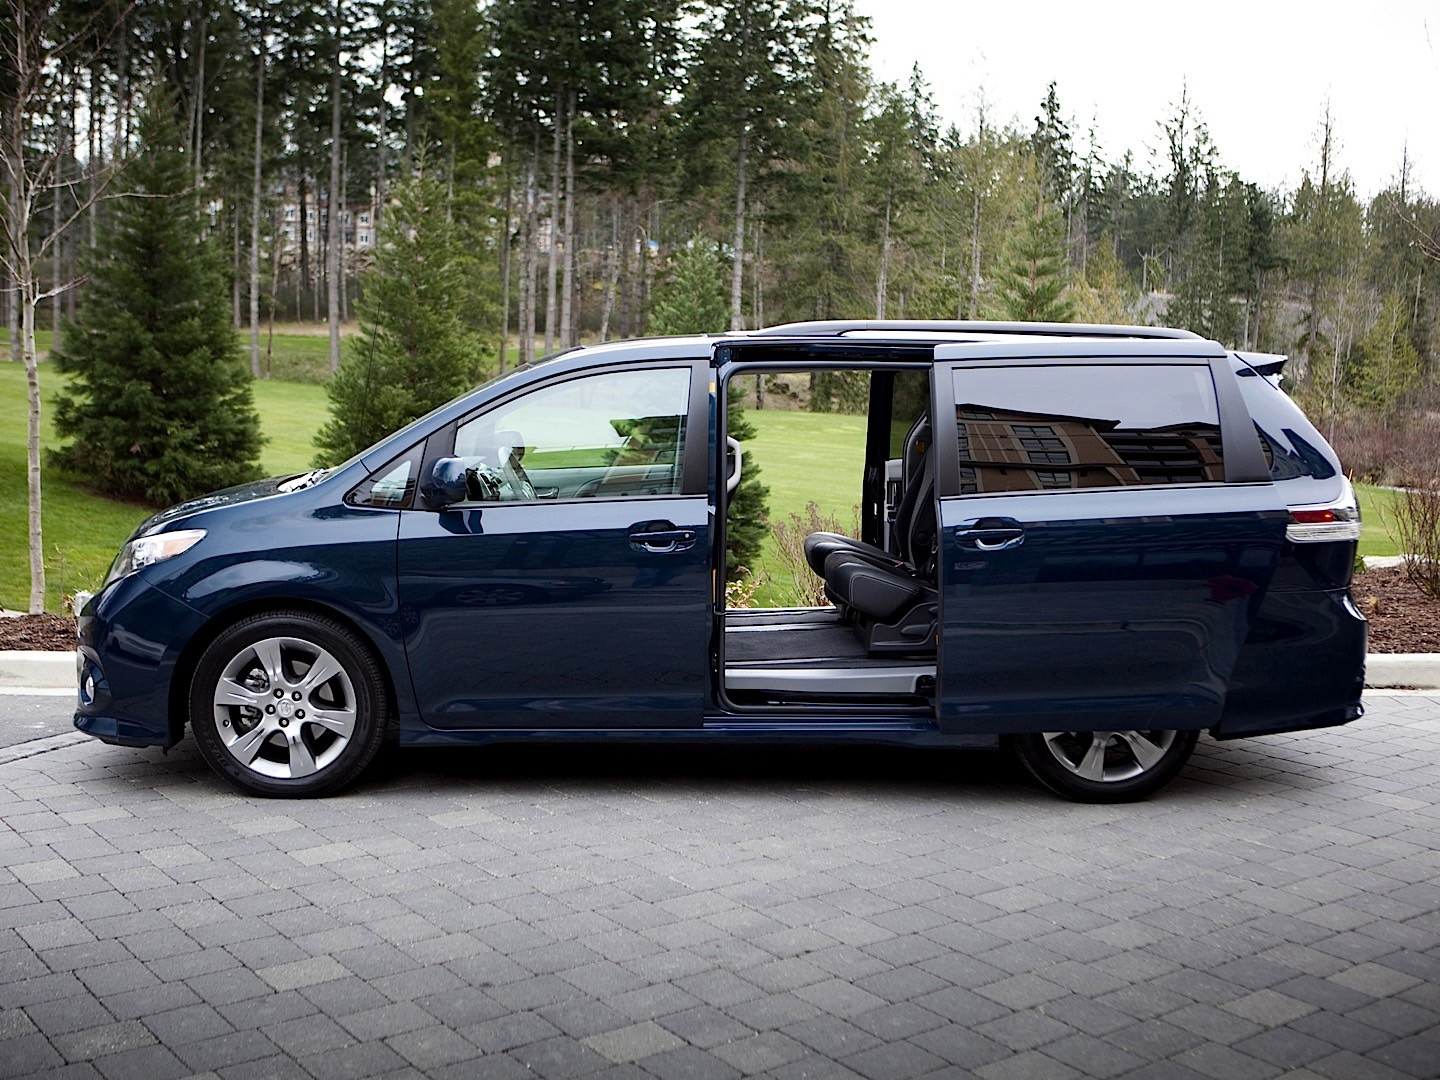 Creative Toyota Is Recalling Model Year 20112016 Toyota Sienna Minivans Because The Sliding Door Could Open While The Car Is In Motion, Putting Passengers At Risk Of Injury, Toyota Said In A Statement According To Toyota, If The Minivans